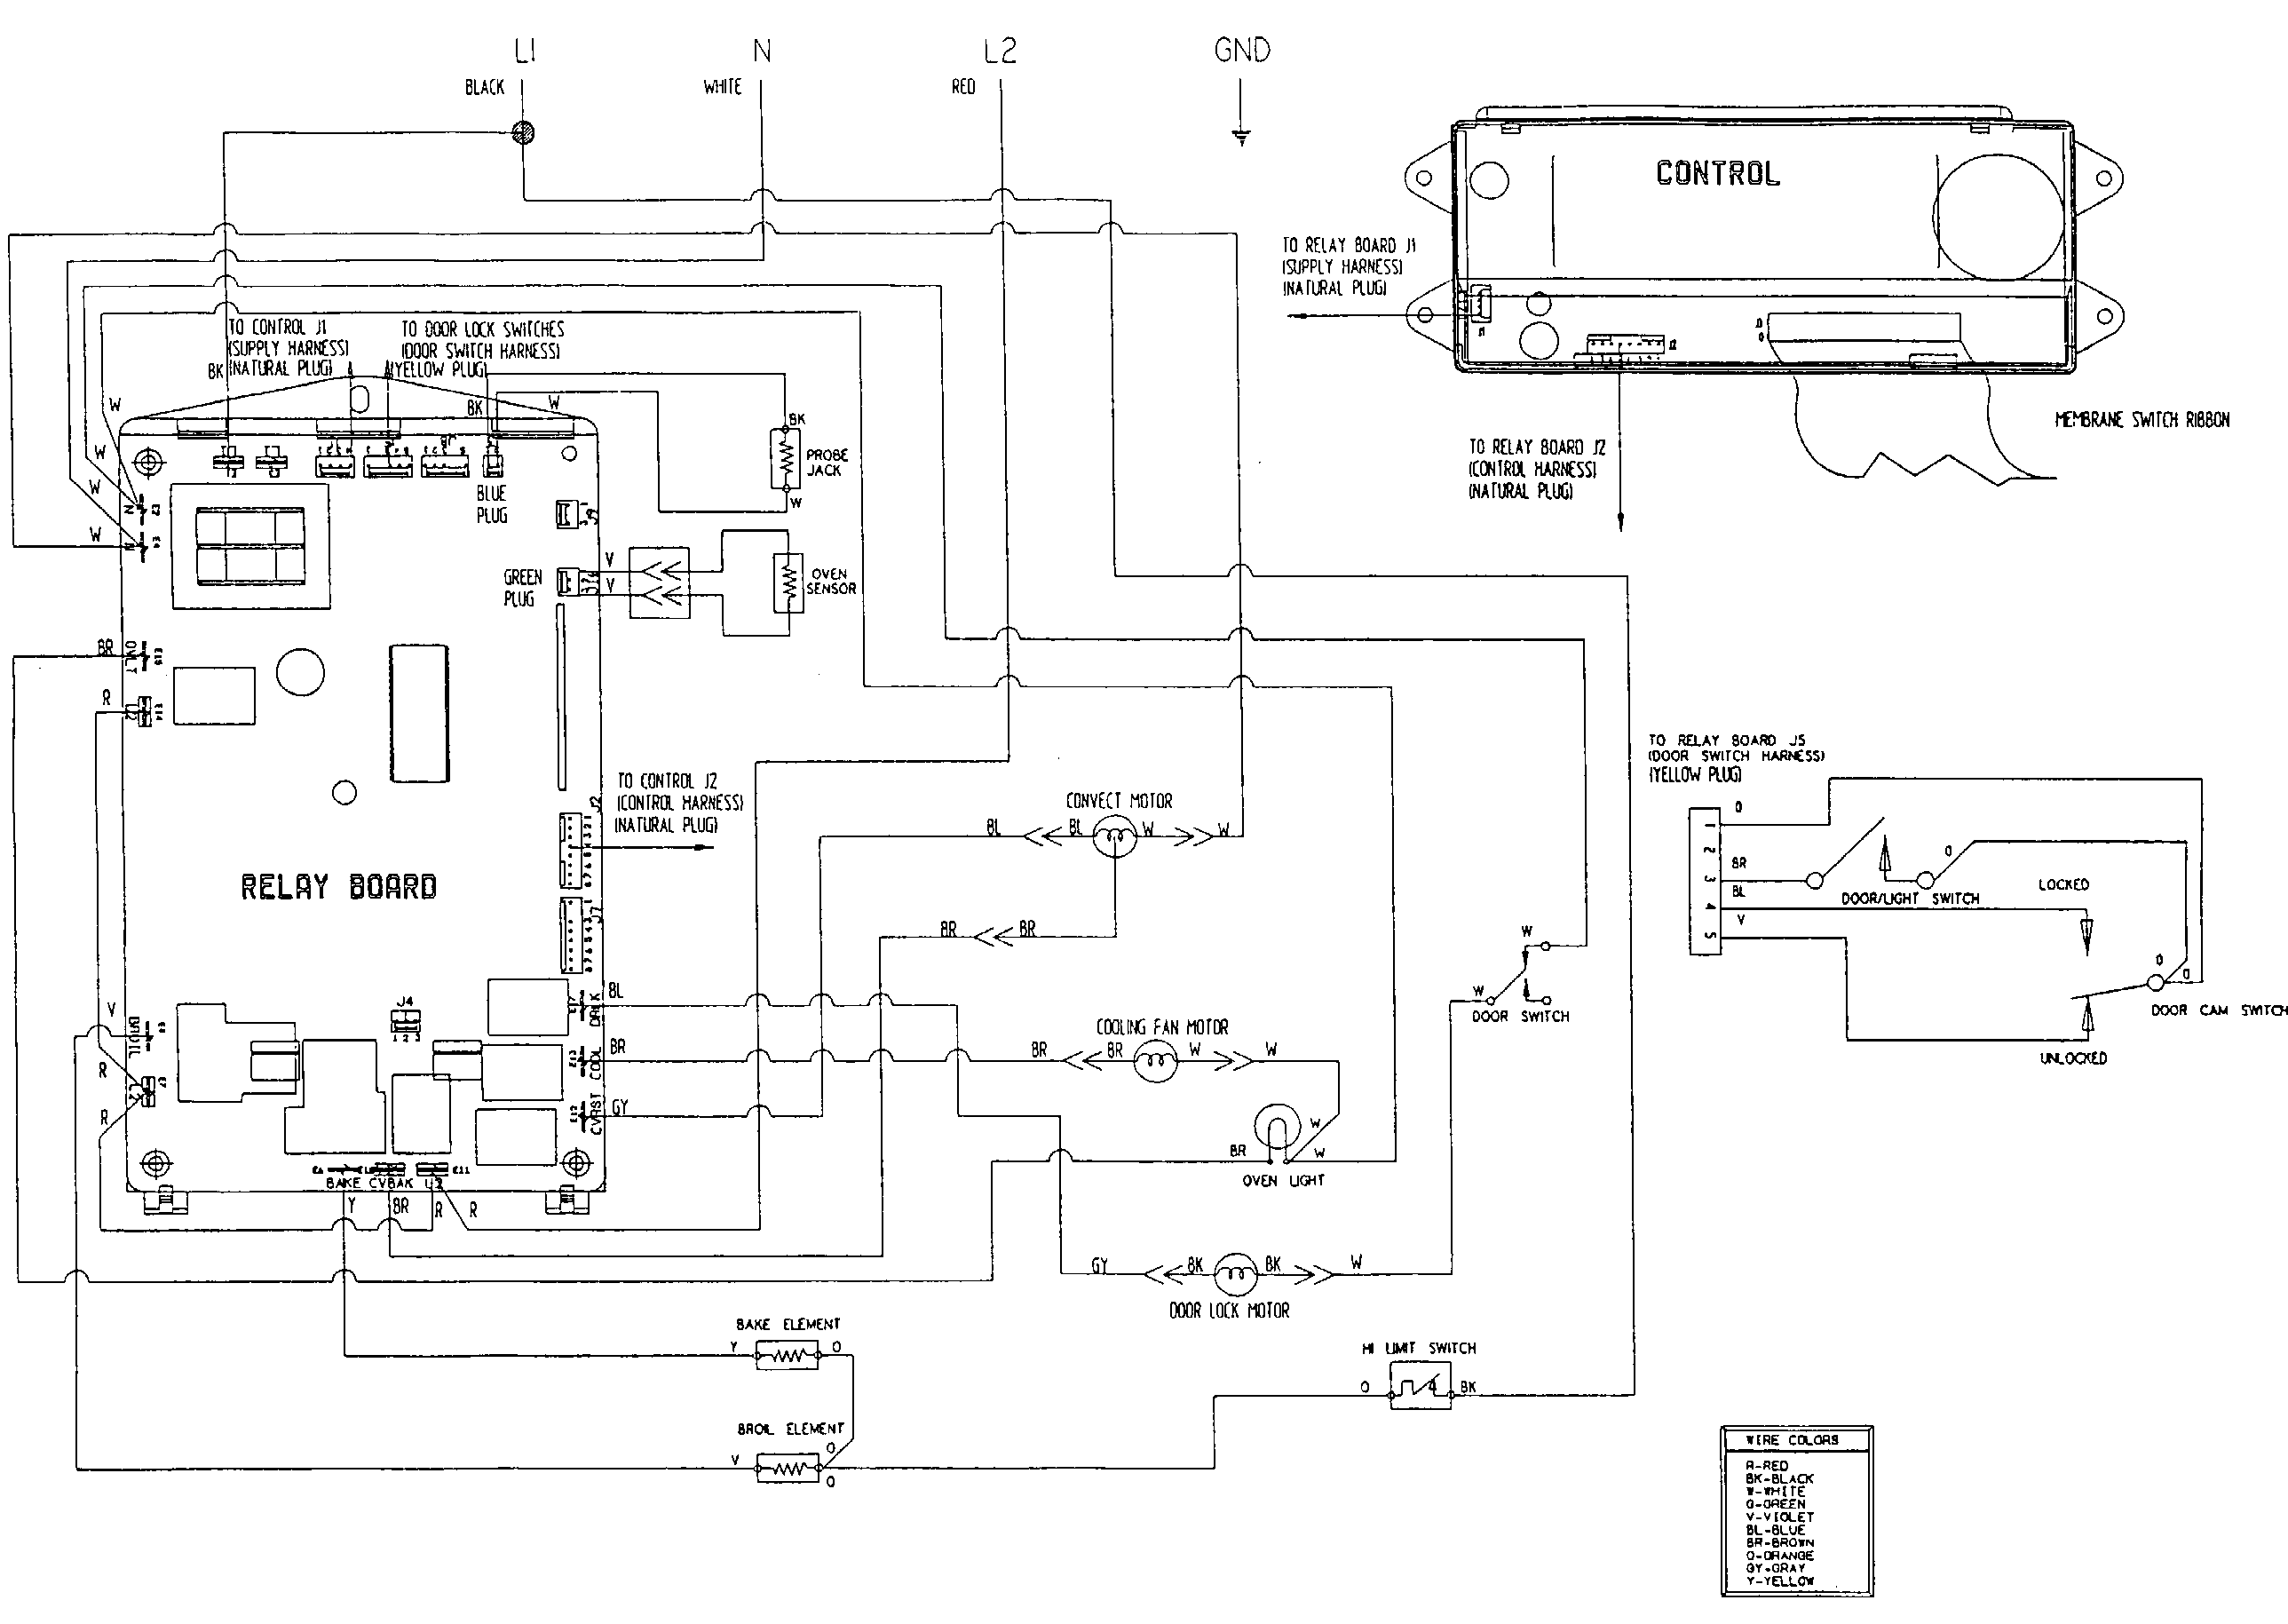 Wiring Diagram Electric Cooker : Jenn air w bc electric wall oven timer stove clocks